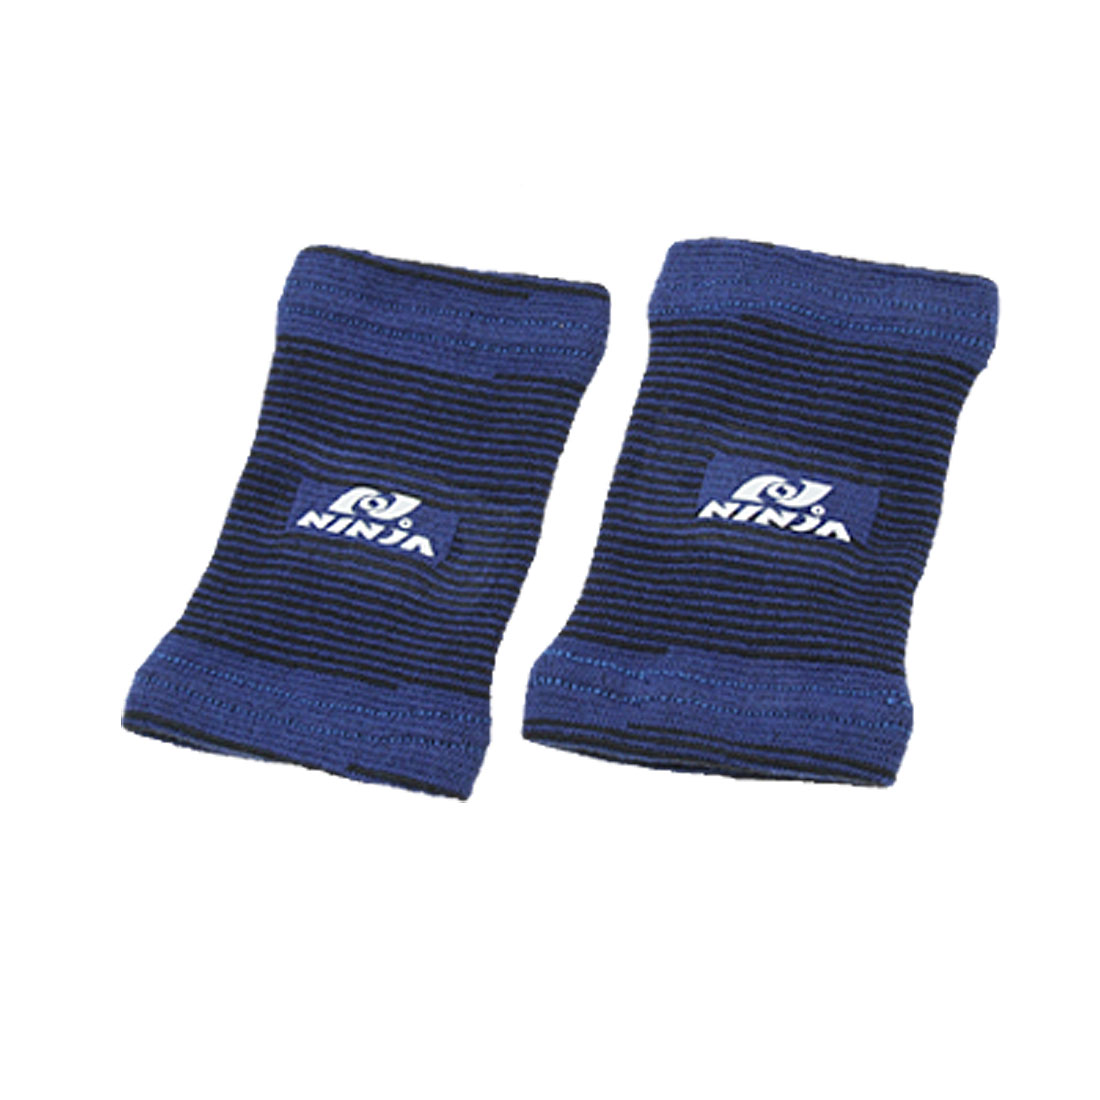 Blue Sports Wrist Support Protector for Athlete Size M